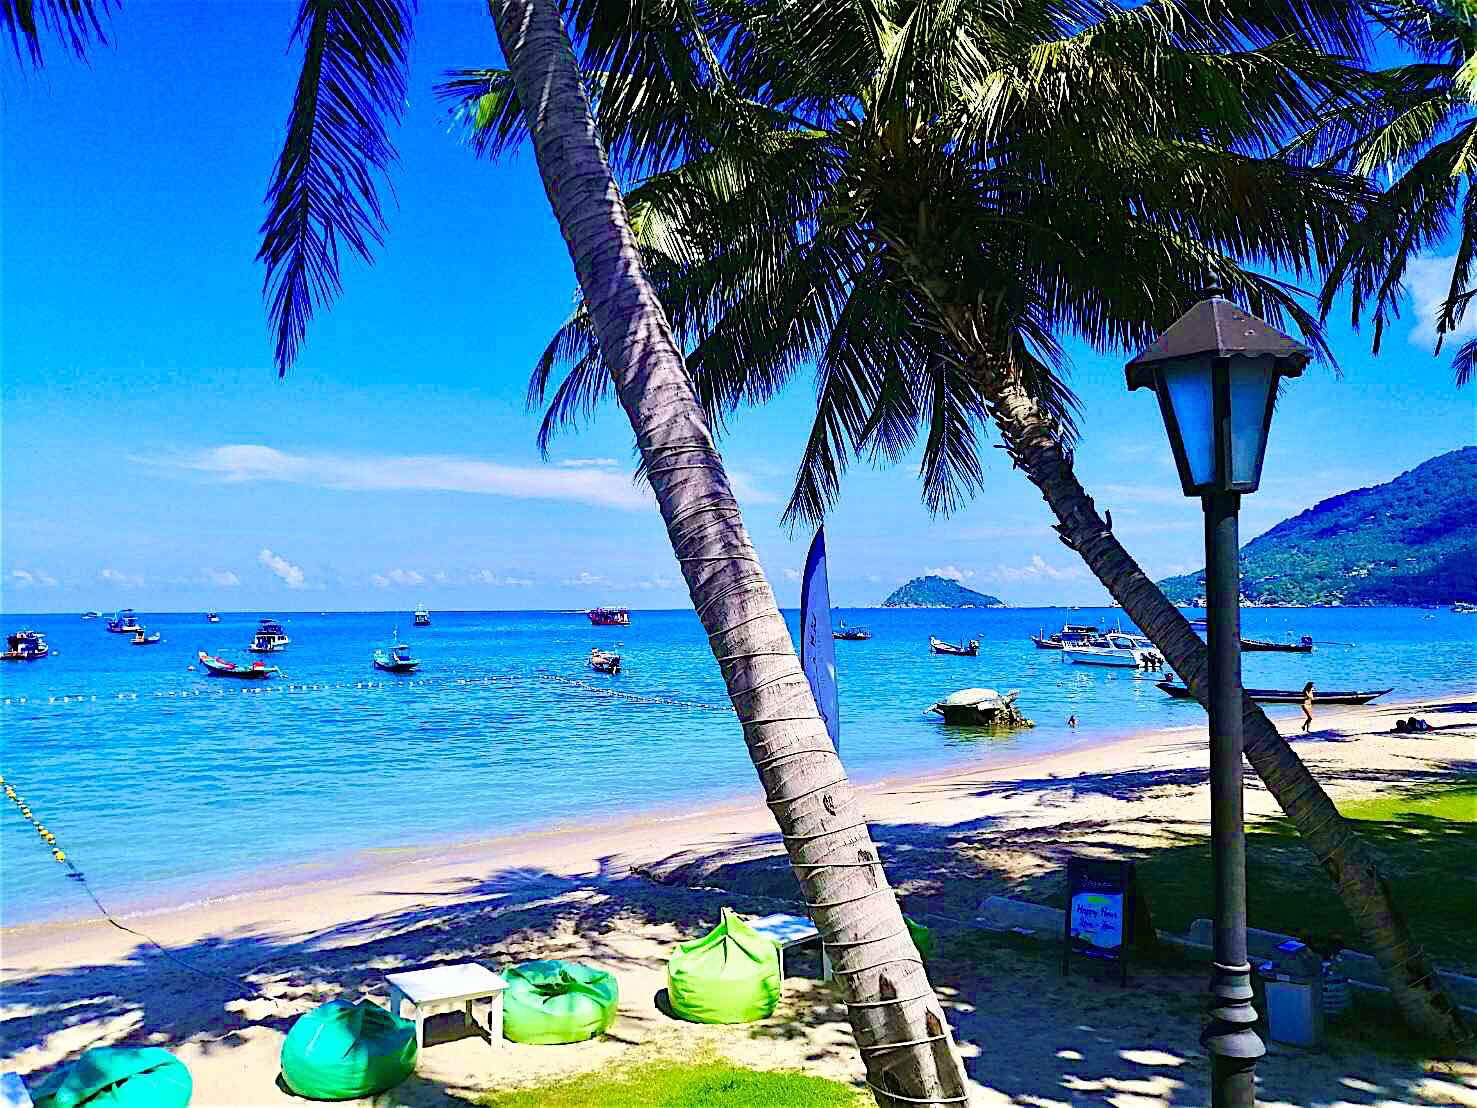 www.thefunkyturtle.com breeze restaurant koh tao beach location